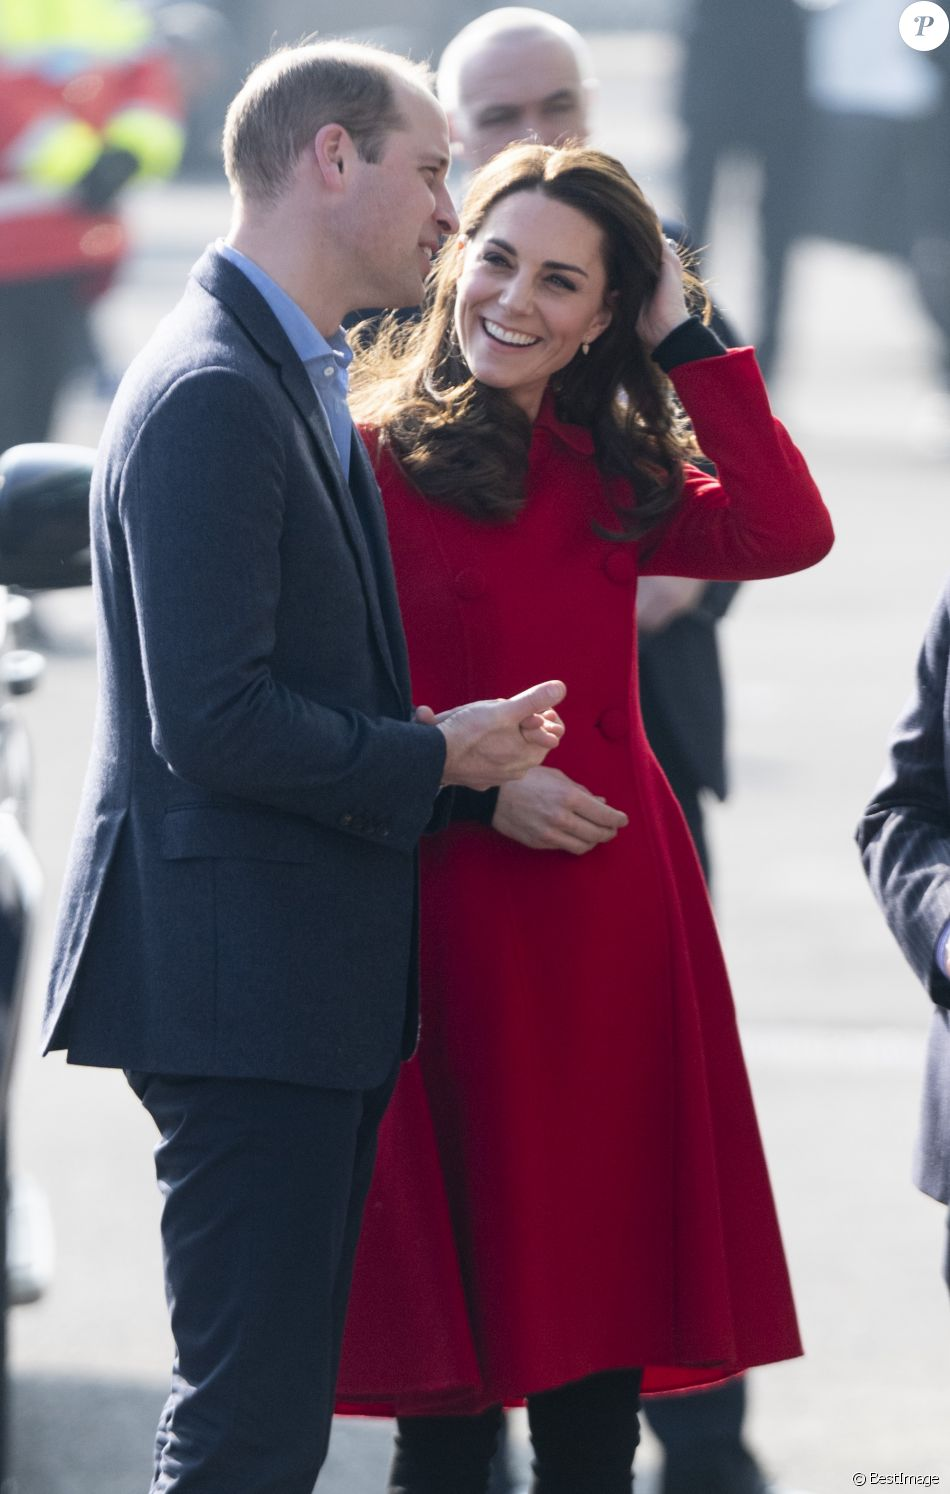 Le prince William, duc de Cambridge, et Kate Catherine Middleton, duchesse de Cambridge, en visite au Windsor Park à Belfast, à l'occasion de leur voyage officiel en Irlande. Le 27 février 2019